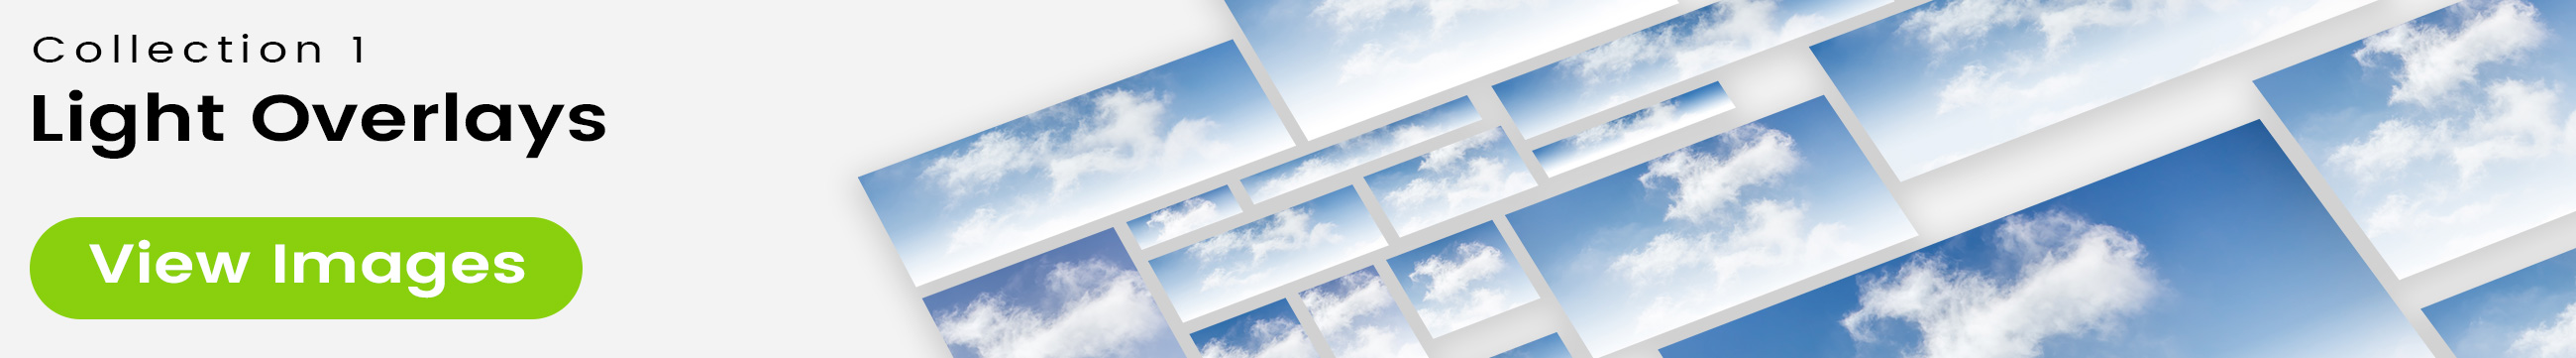 See 25 bonus images included with clouds stock image 9472. Collection 1 of 4 features a light overlay design.